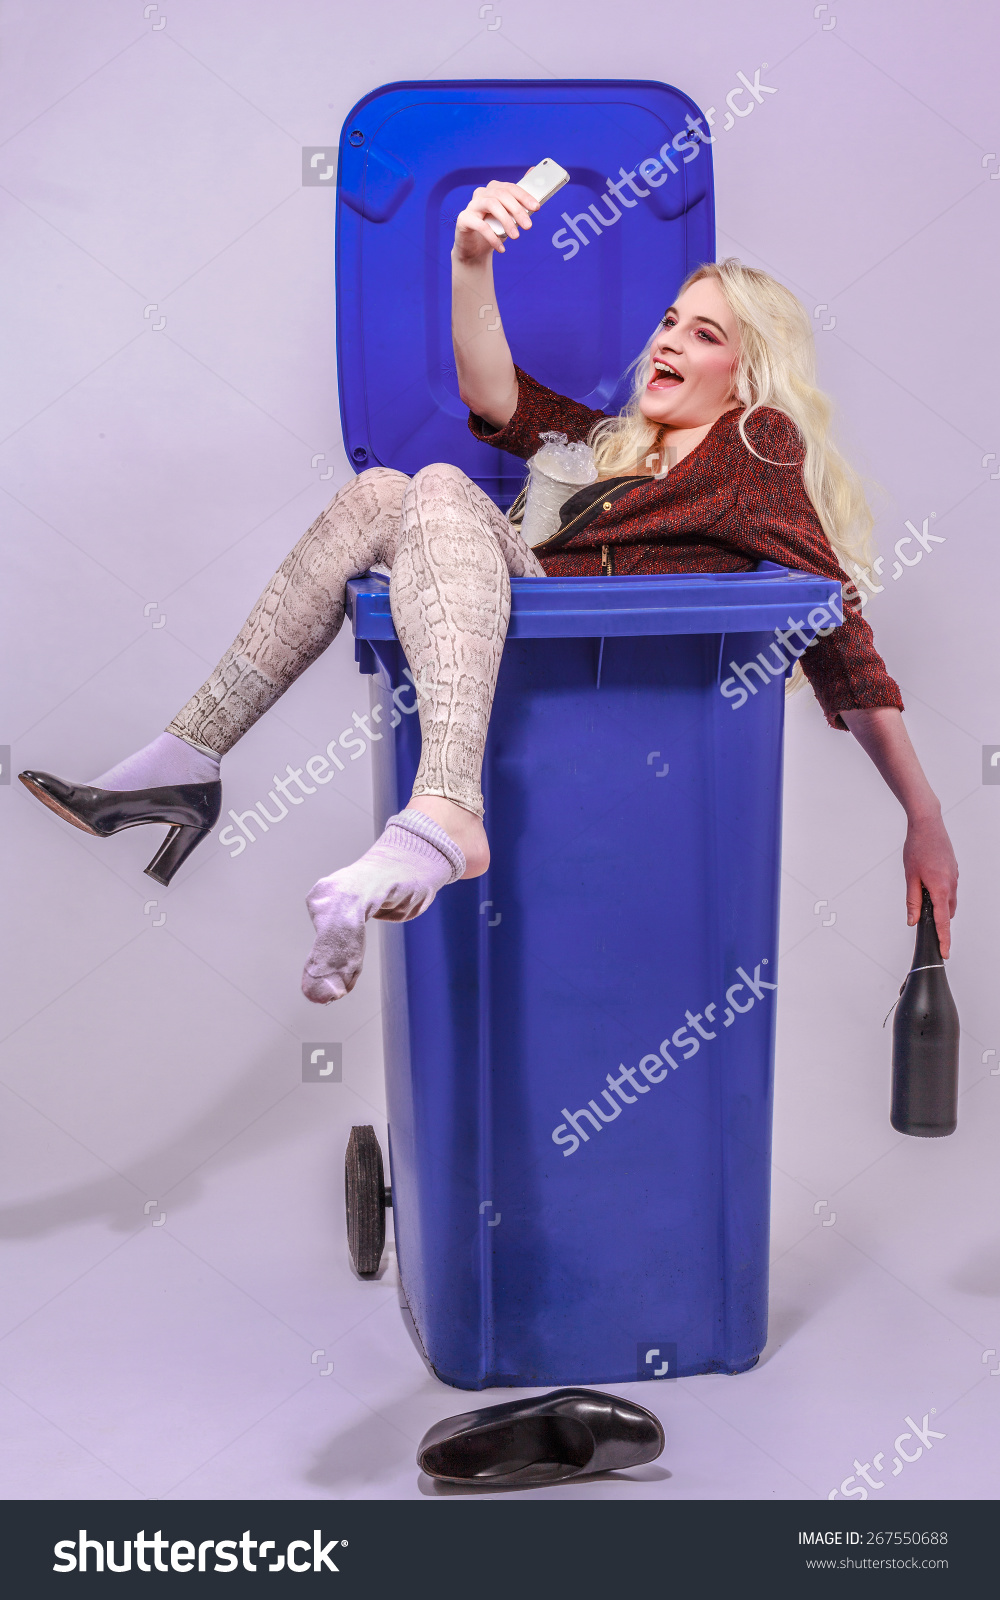 stock-photo-young-alcohol-impaired-girl-with-long-blond-hair-sitting-laughing-in-a-blue-garbage-can-and-makes-267550688